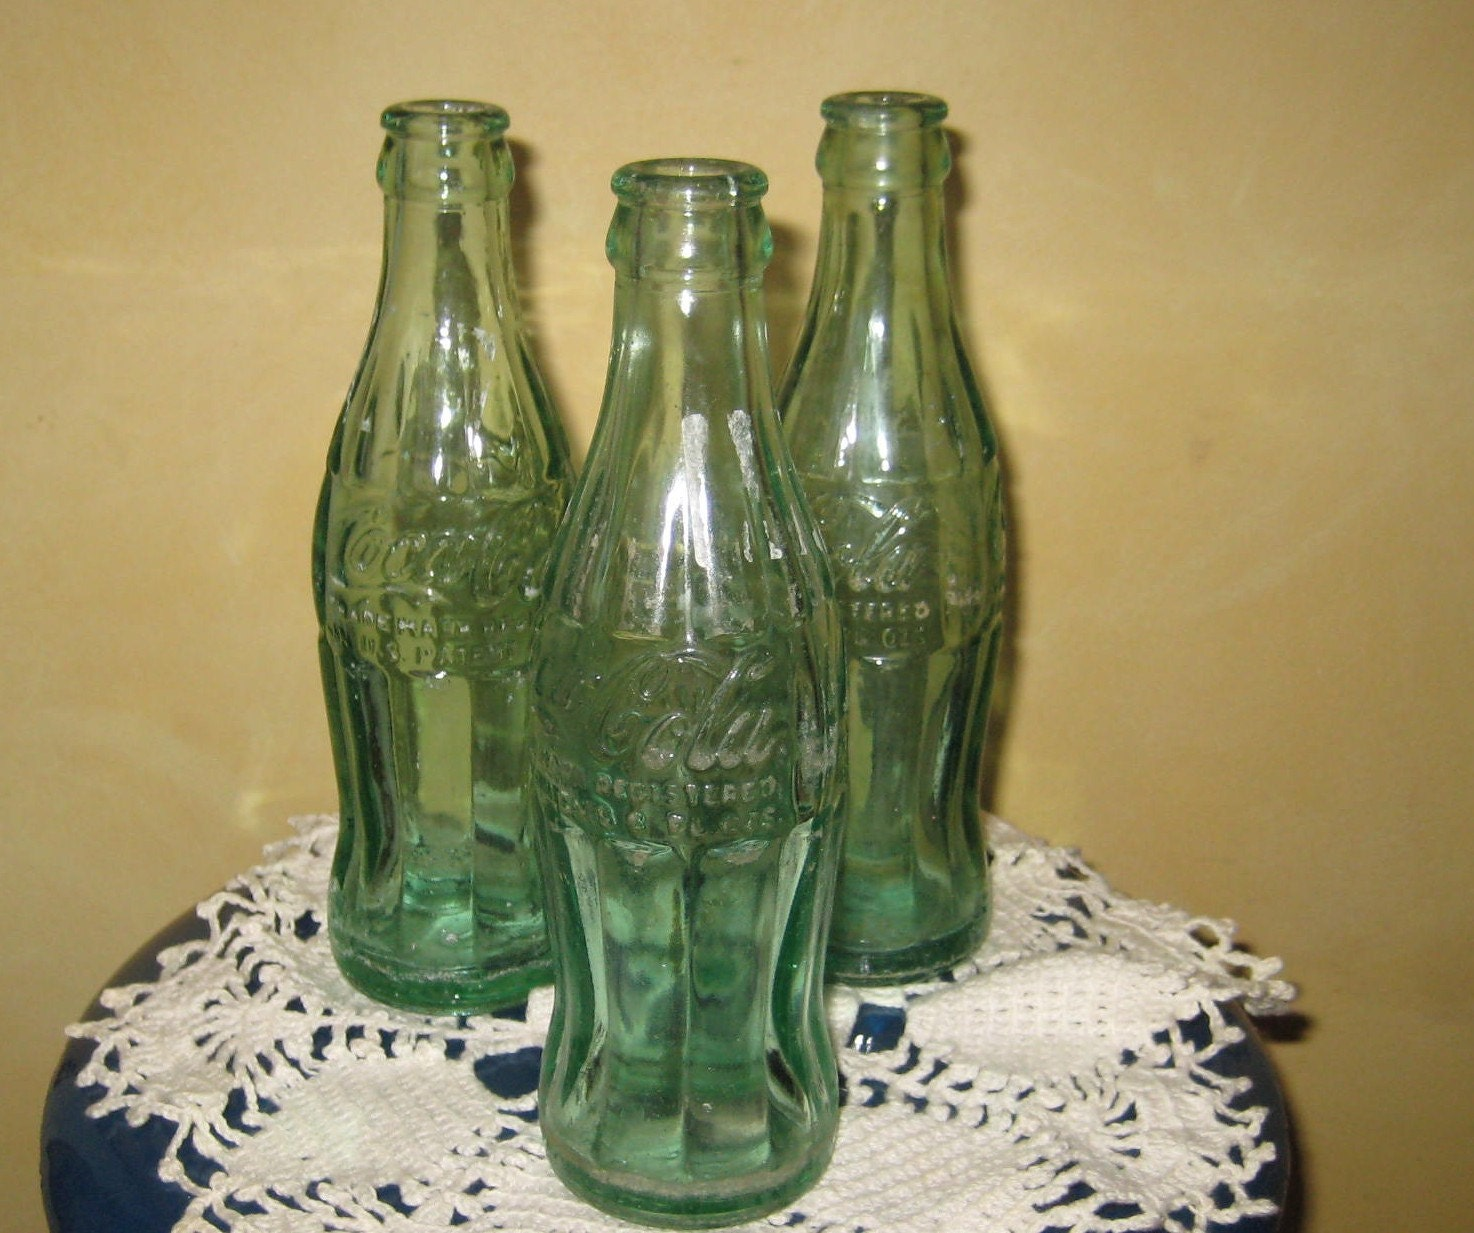 dating antique coke bottles Coca-cola bottles, cans & related coca-cola bottles have varied throughout the years from the vintage soda bottles and bottle carriers to the current day limited edition commemorative coke bottles, cola corner has them.